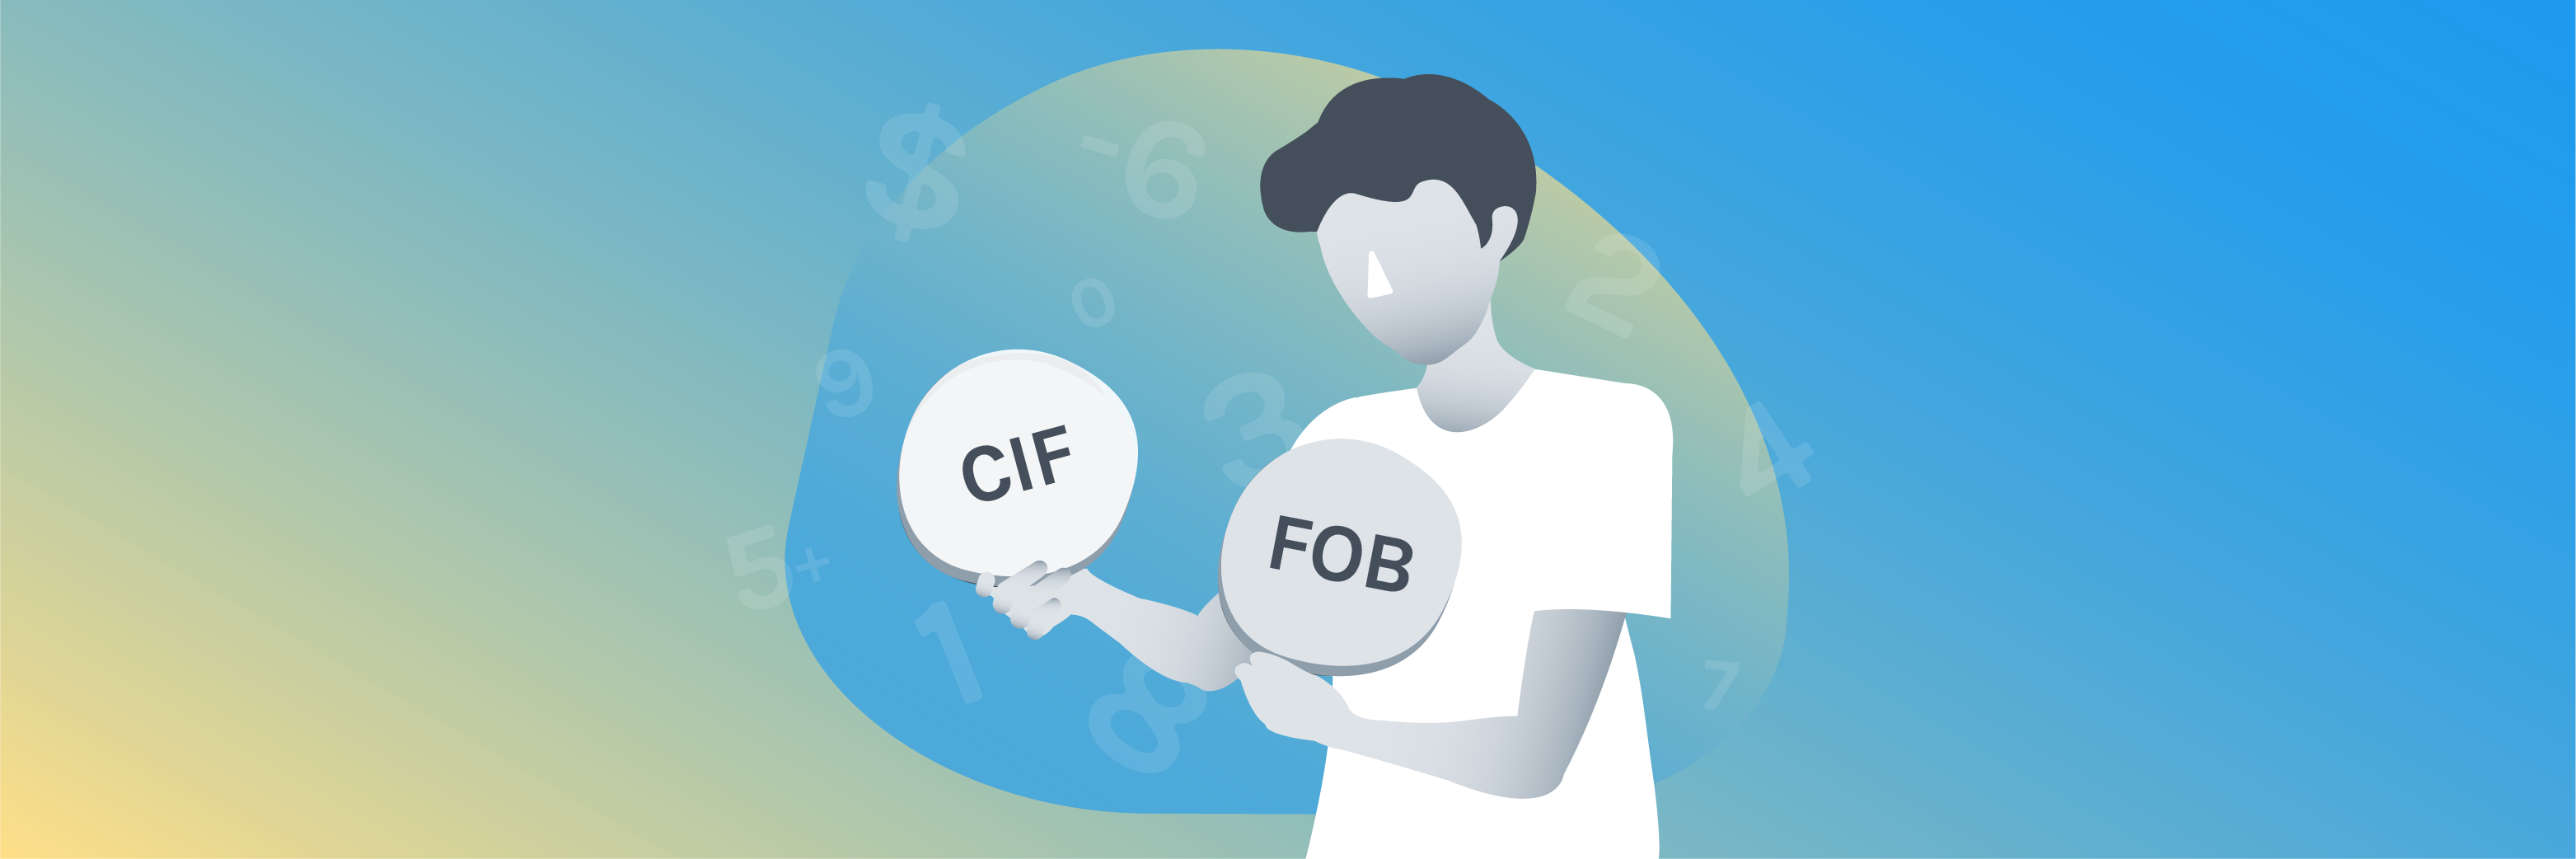 What is difference between FOB and CIF?